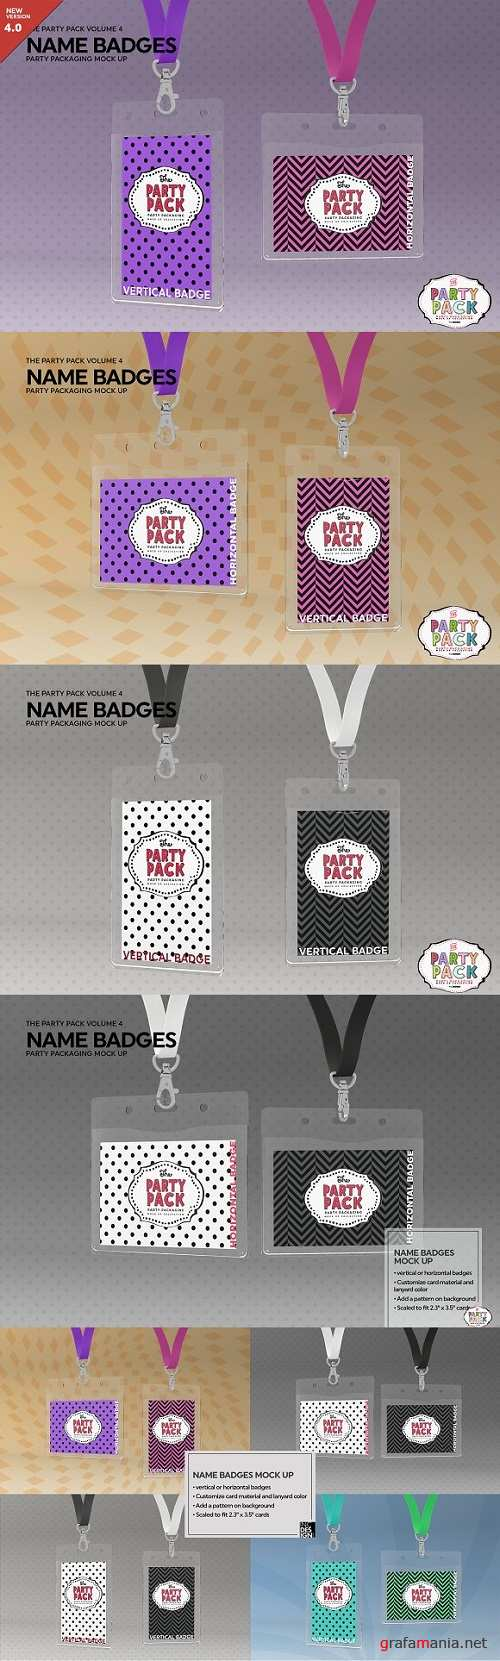 Name Badges with Lanyards Mock Up - 2199329